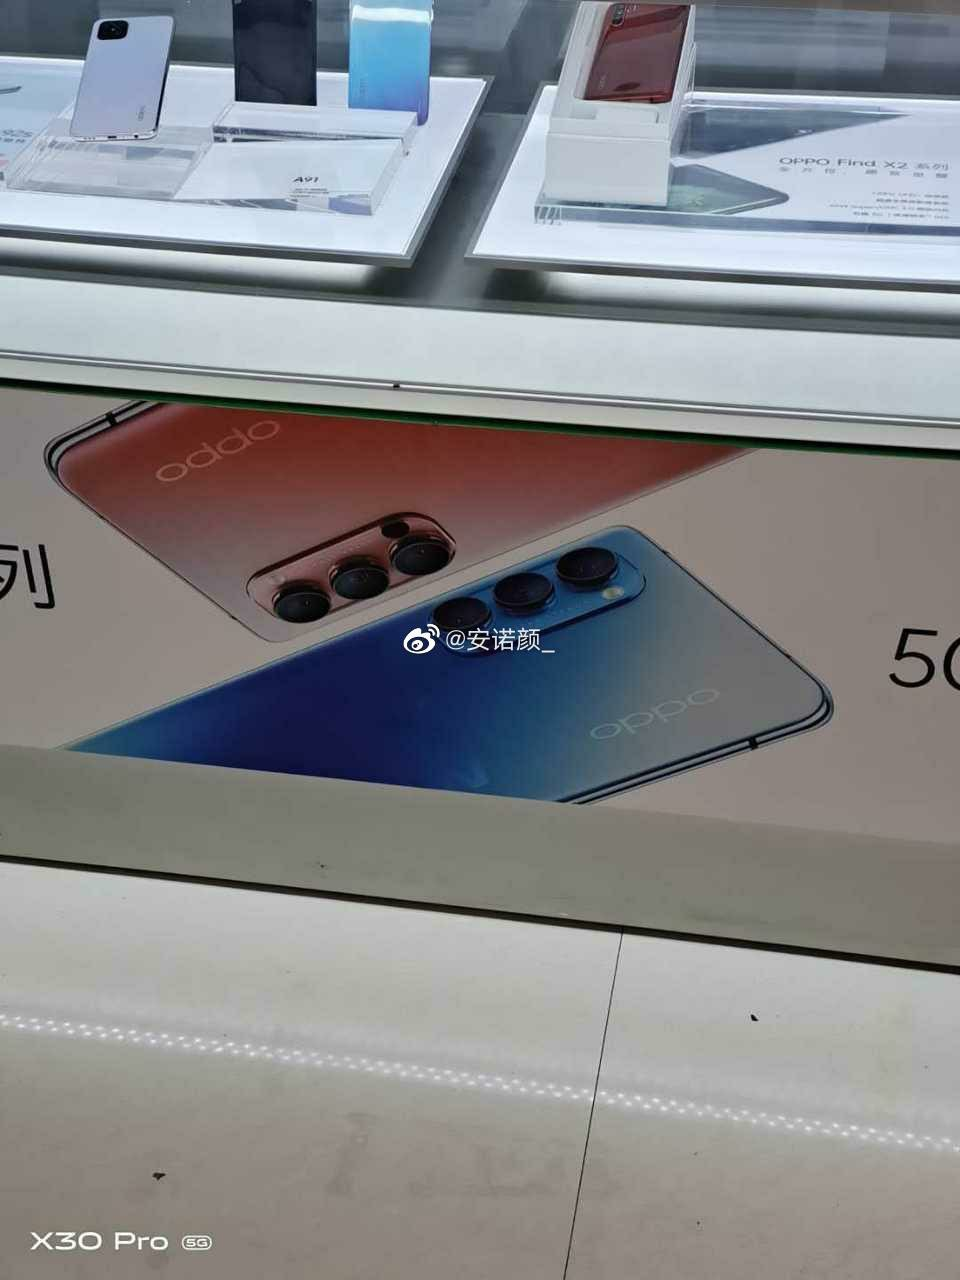 Oppo Reno4 Smartphone Popped In Promo Images Displayed In China